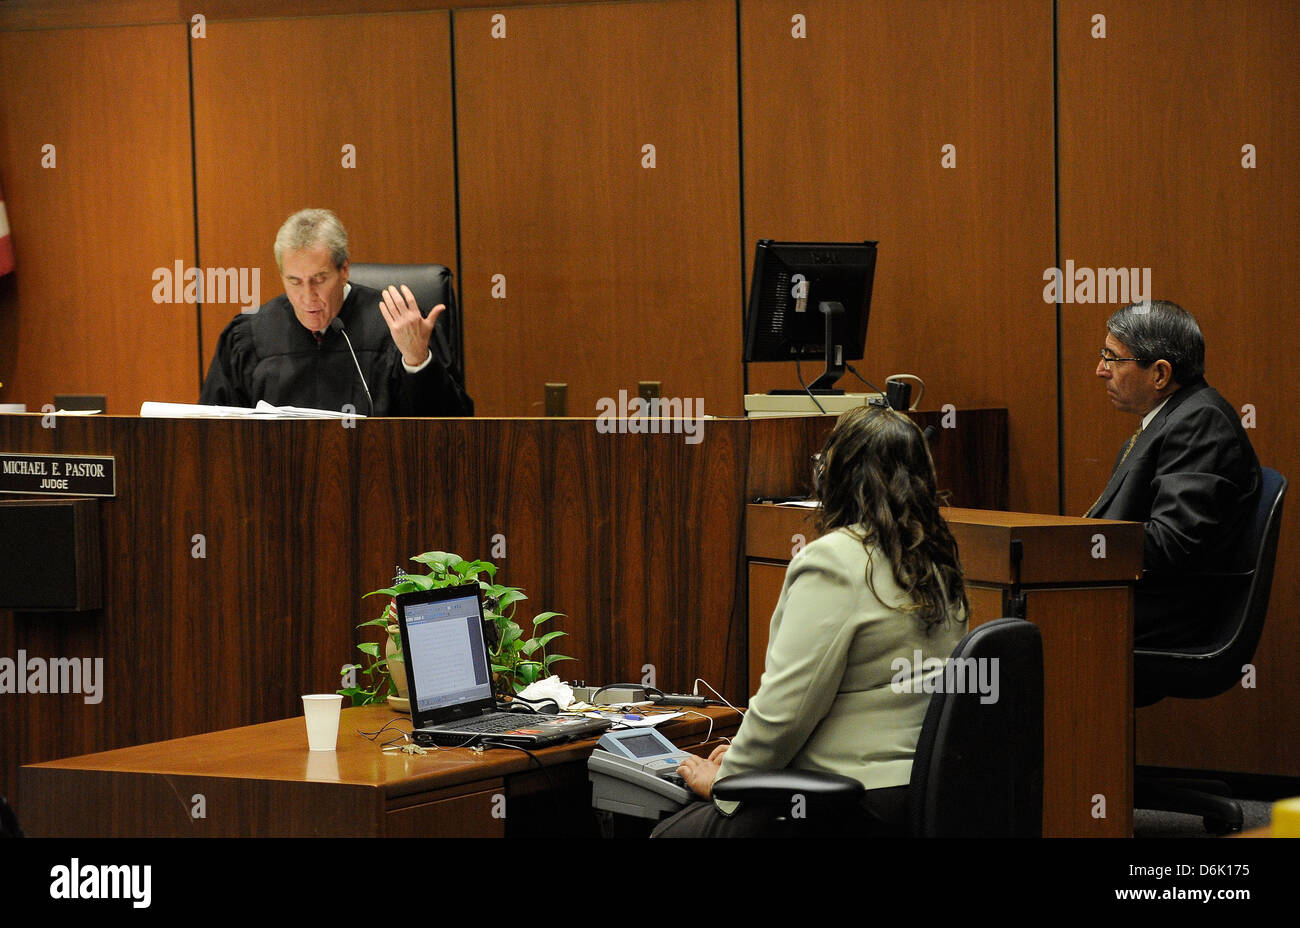 Judge Michael Pastor charges Dr. Paul White with contempt of court and fines him $1000 during the final stage of - Stock Image